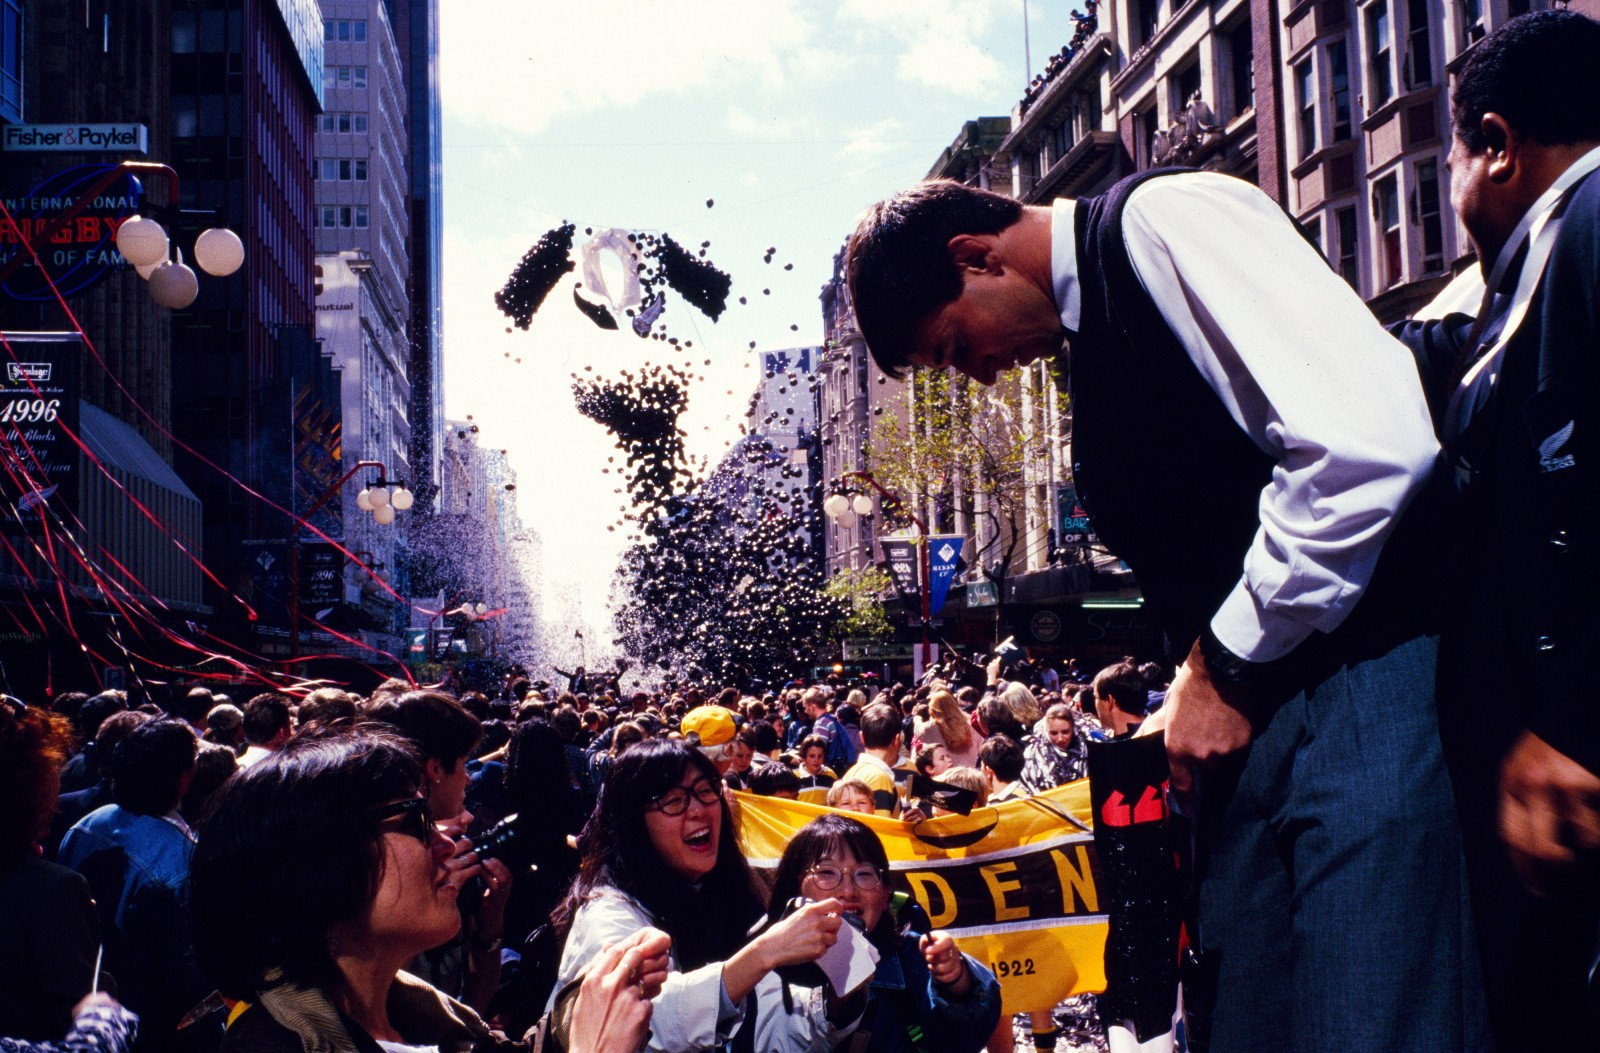 "Dubbed ""The Incomparables,"" the 1996 All Blacks returning from the first ever test series win in South Africa were feted by thousands of supporters on the streets of Auckland. Lock forward Ian Jones signs for a fan as a huge All Black jersey made of balloons is freed."